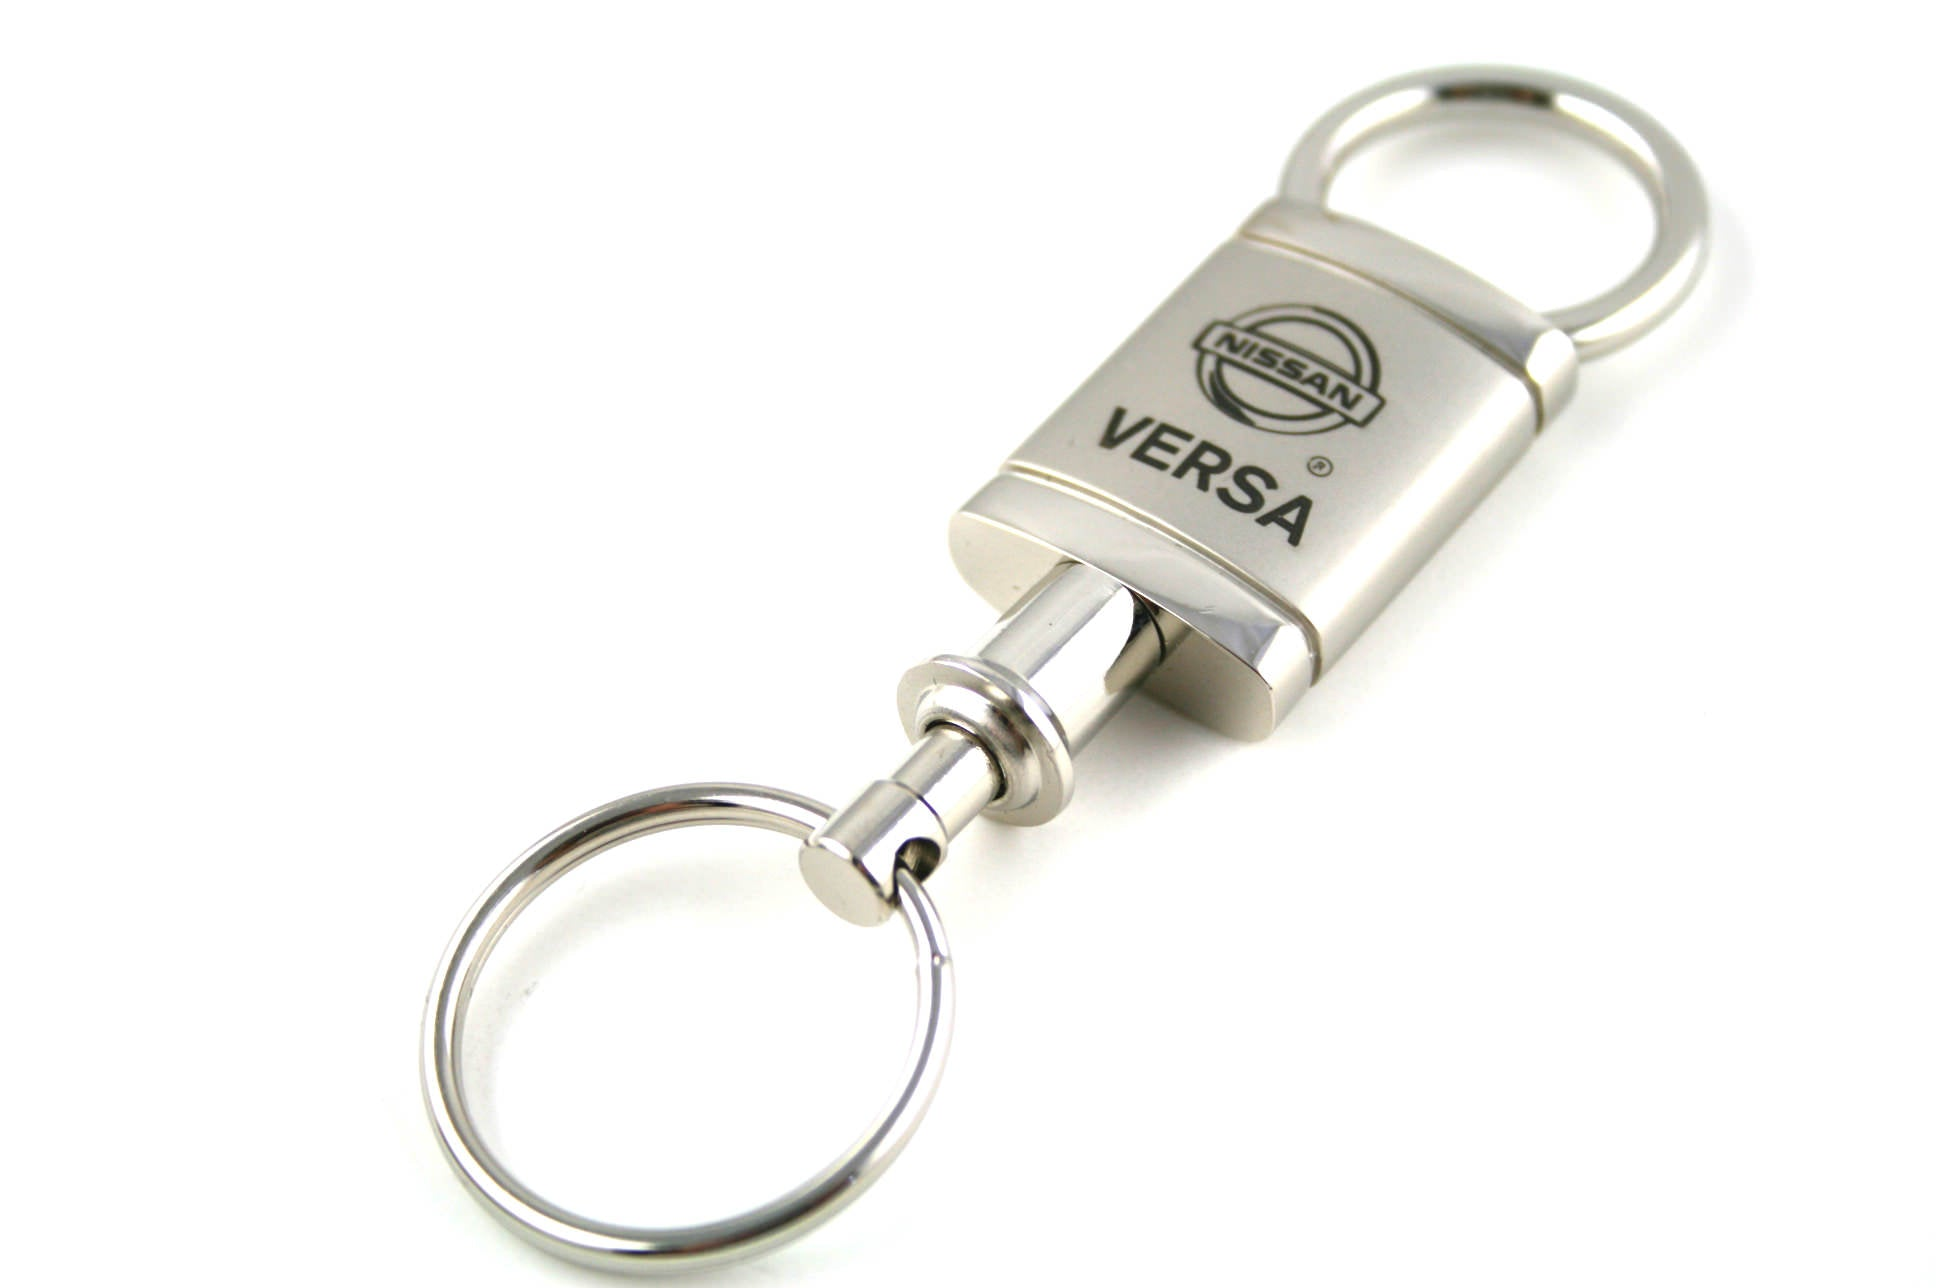 Nissan Versa Key Chain